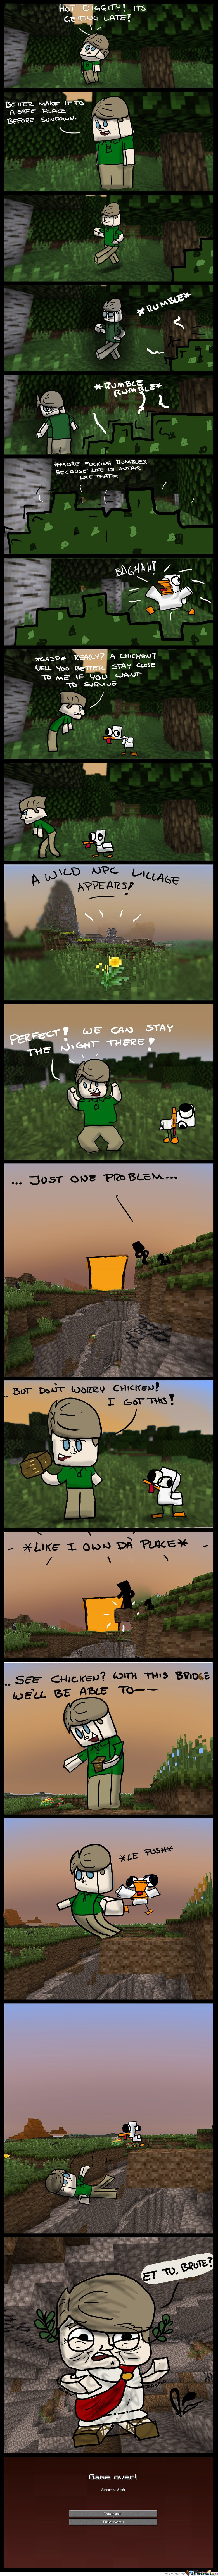 Minecraft Comic - See Chicken? With this bridge we'll be able to